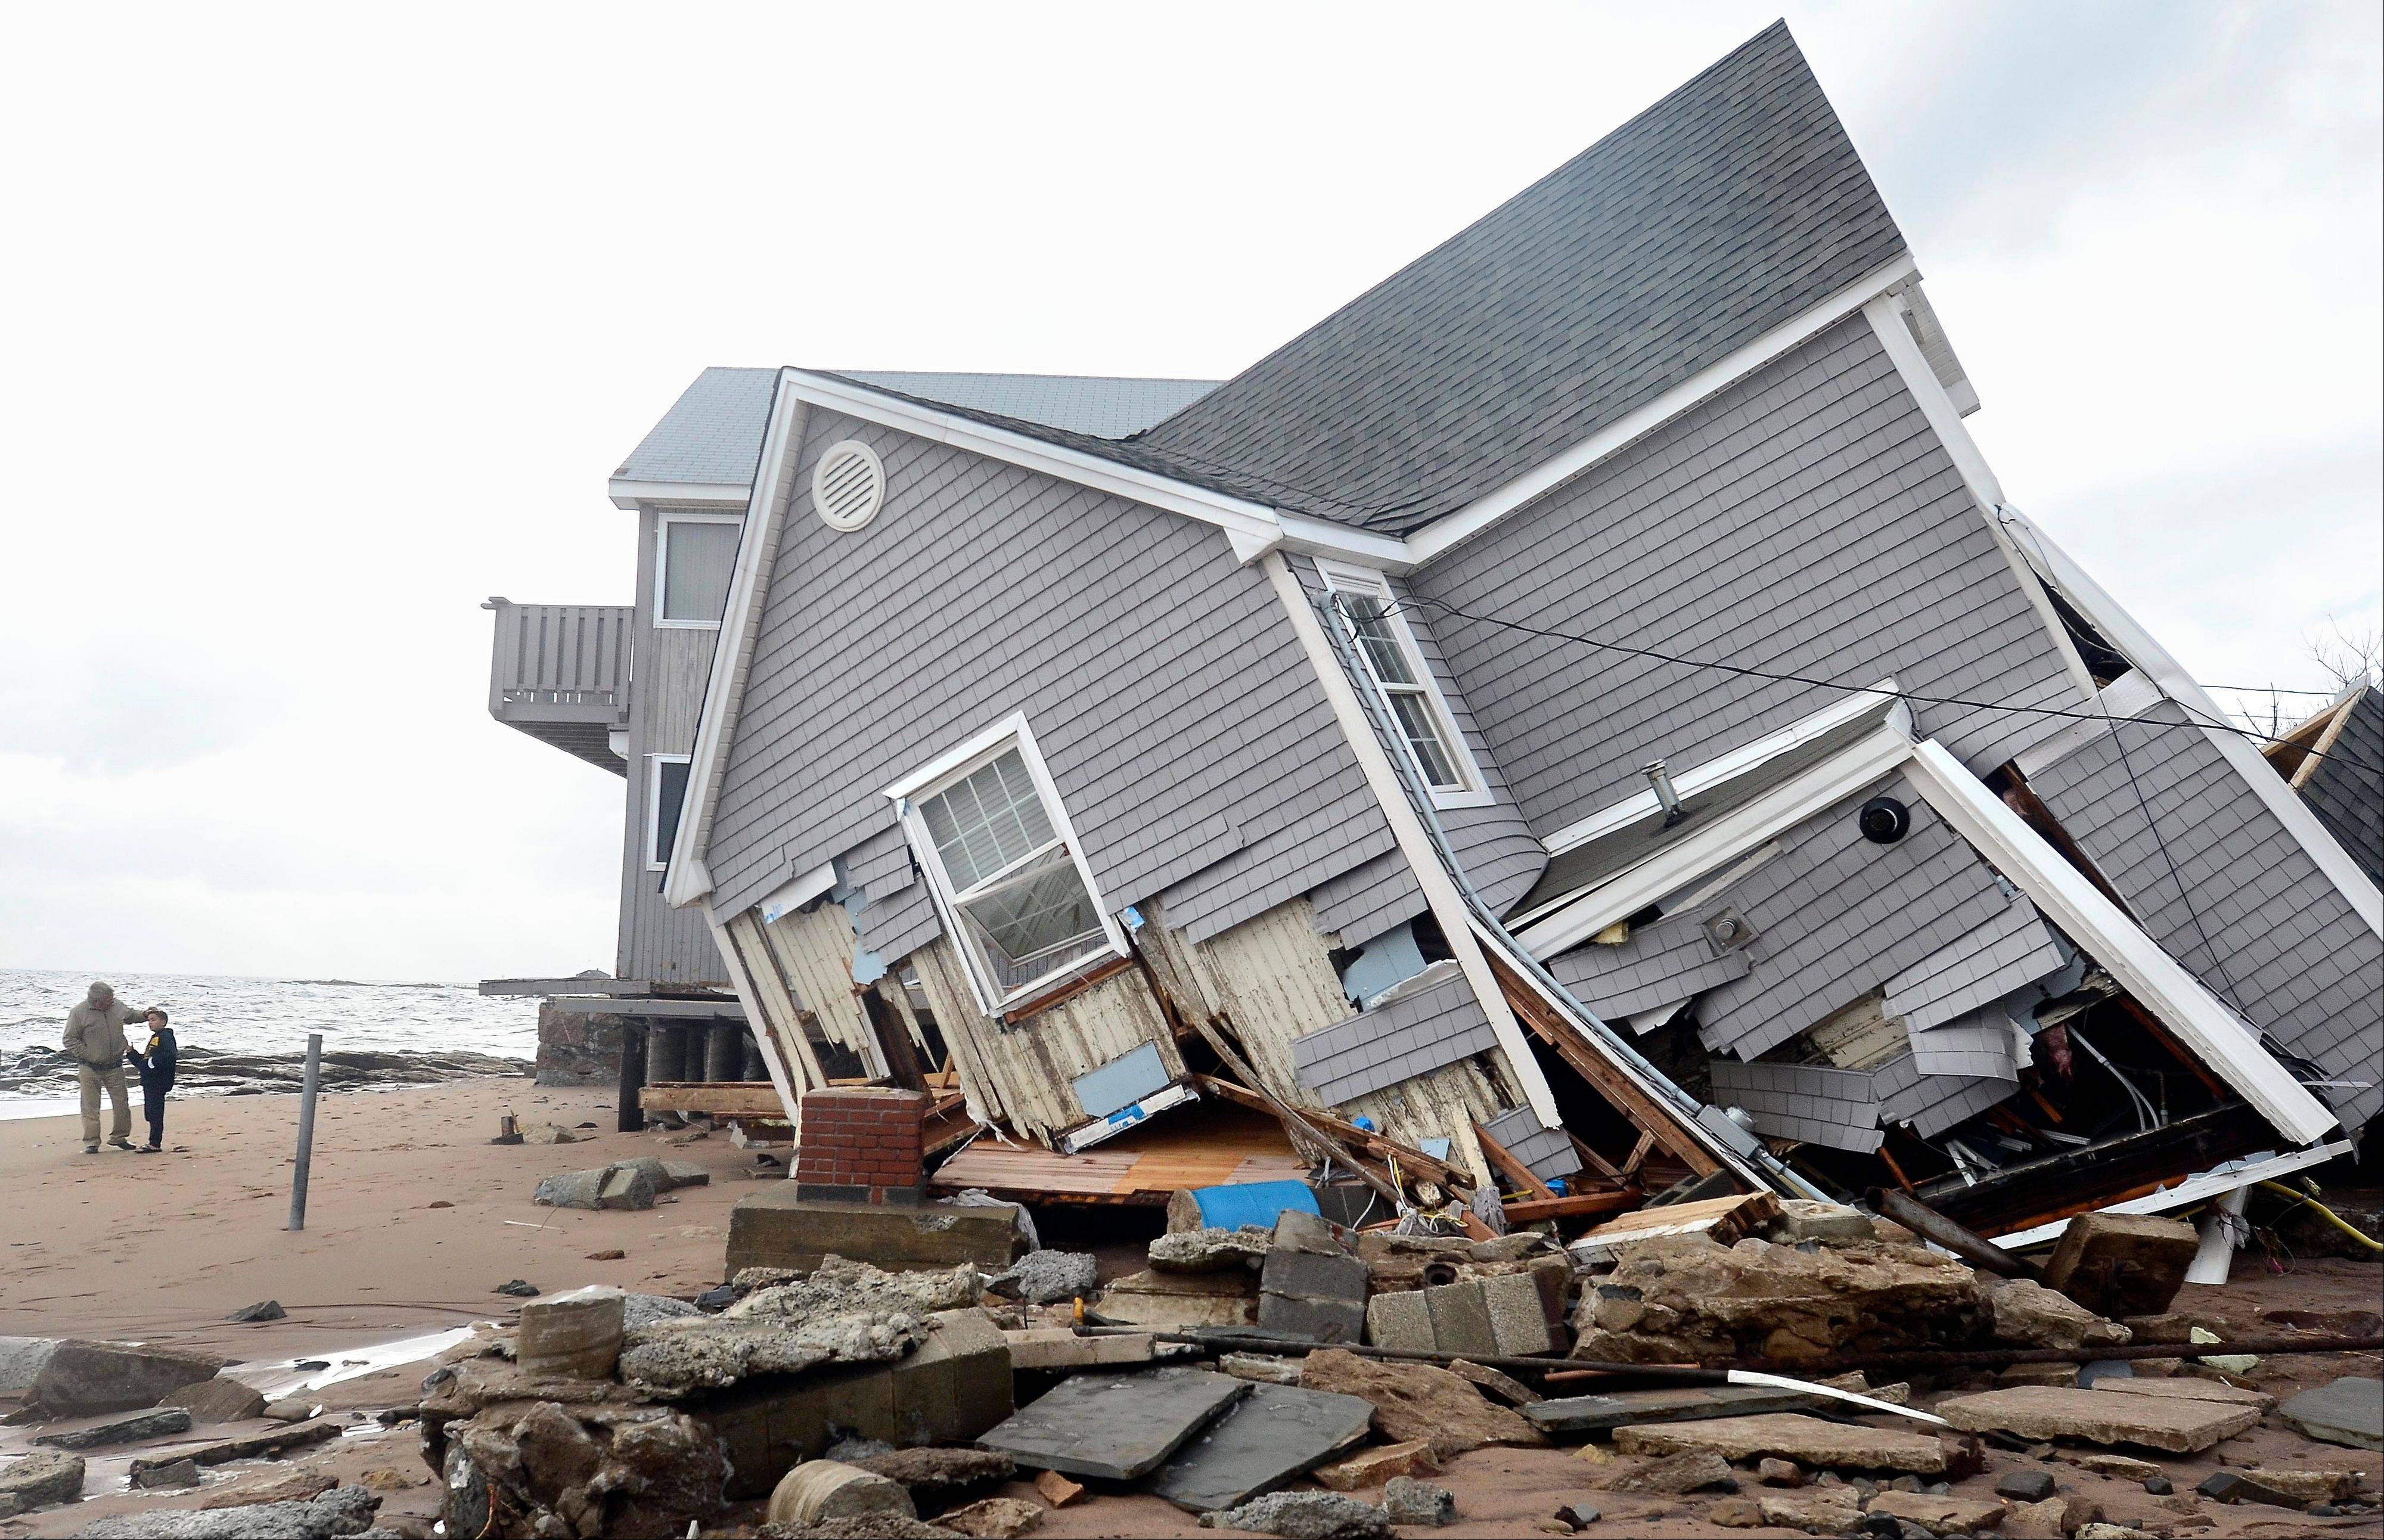 People stand next to a house collapsed from superstorm Sandy in East Haven, Conn., Tuesday.